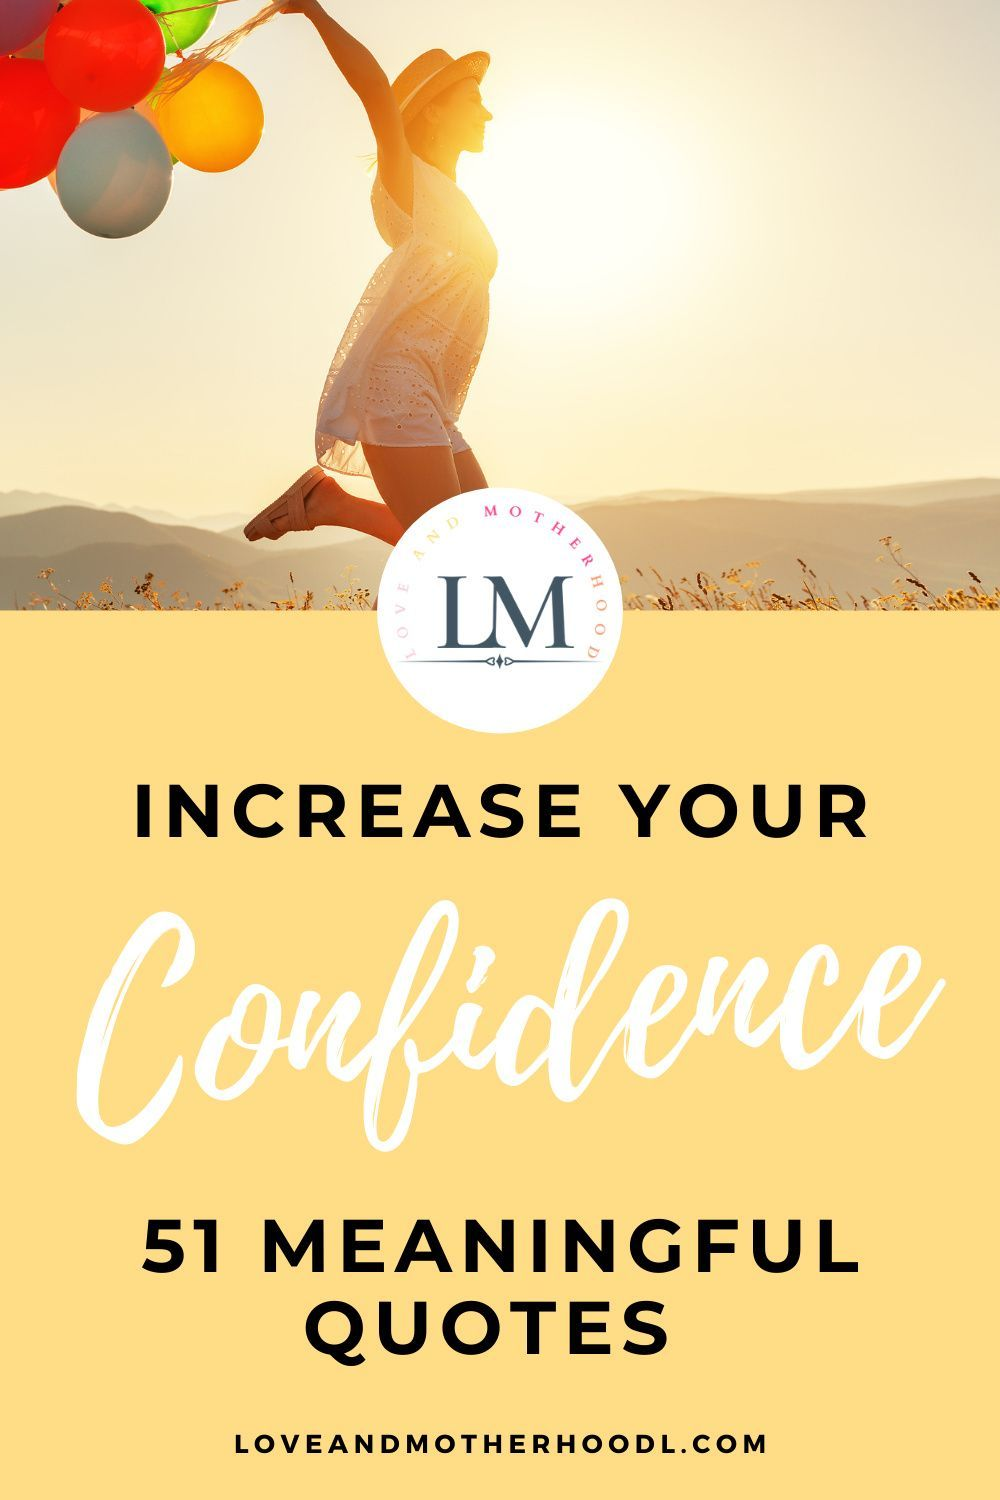 51 Meaningful Quotes For Increased Confidence